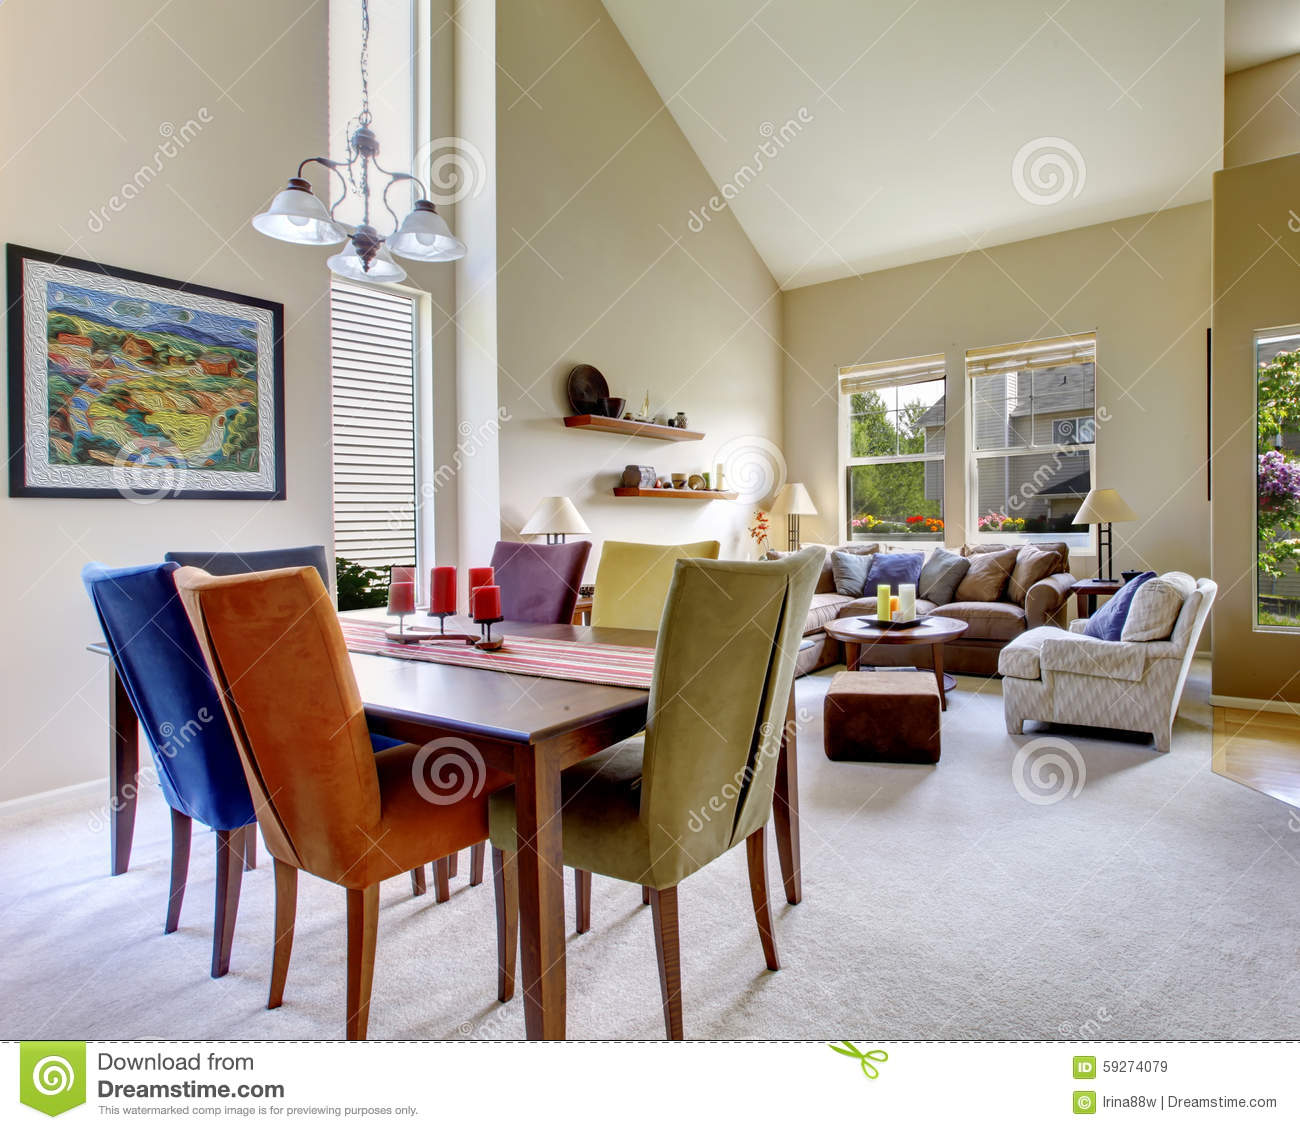 Awesome Large Beige Bright Living Room With Dining Room Table With Download Free Architecture Designs Embacsunscenecom